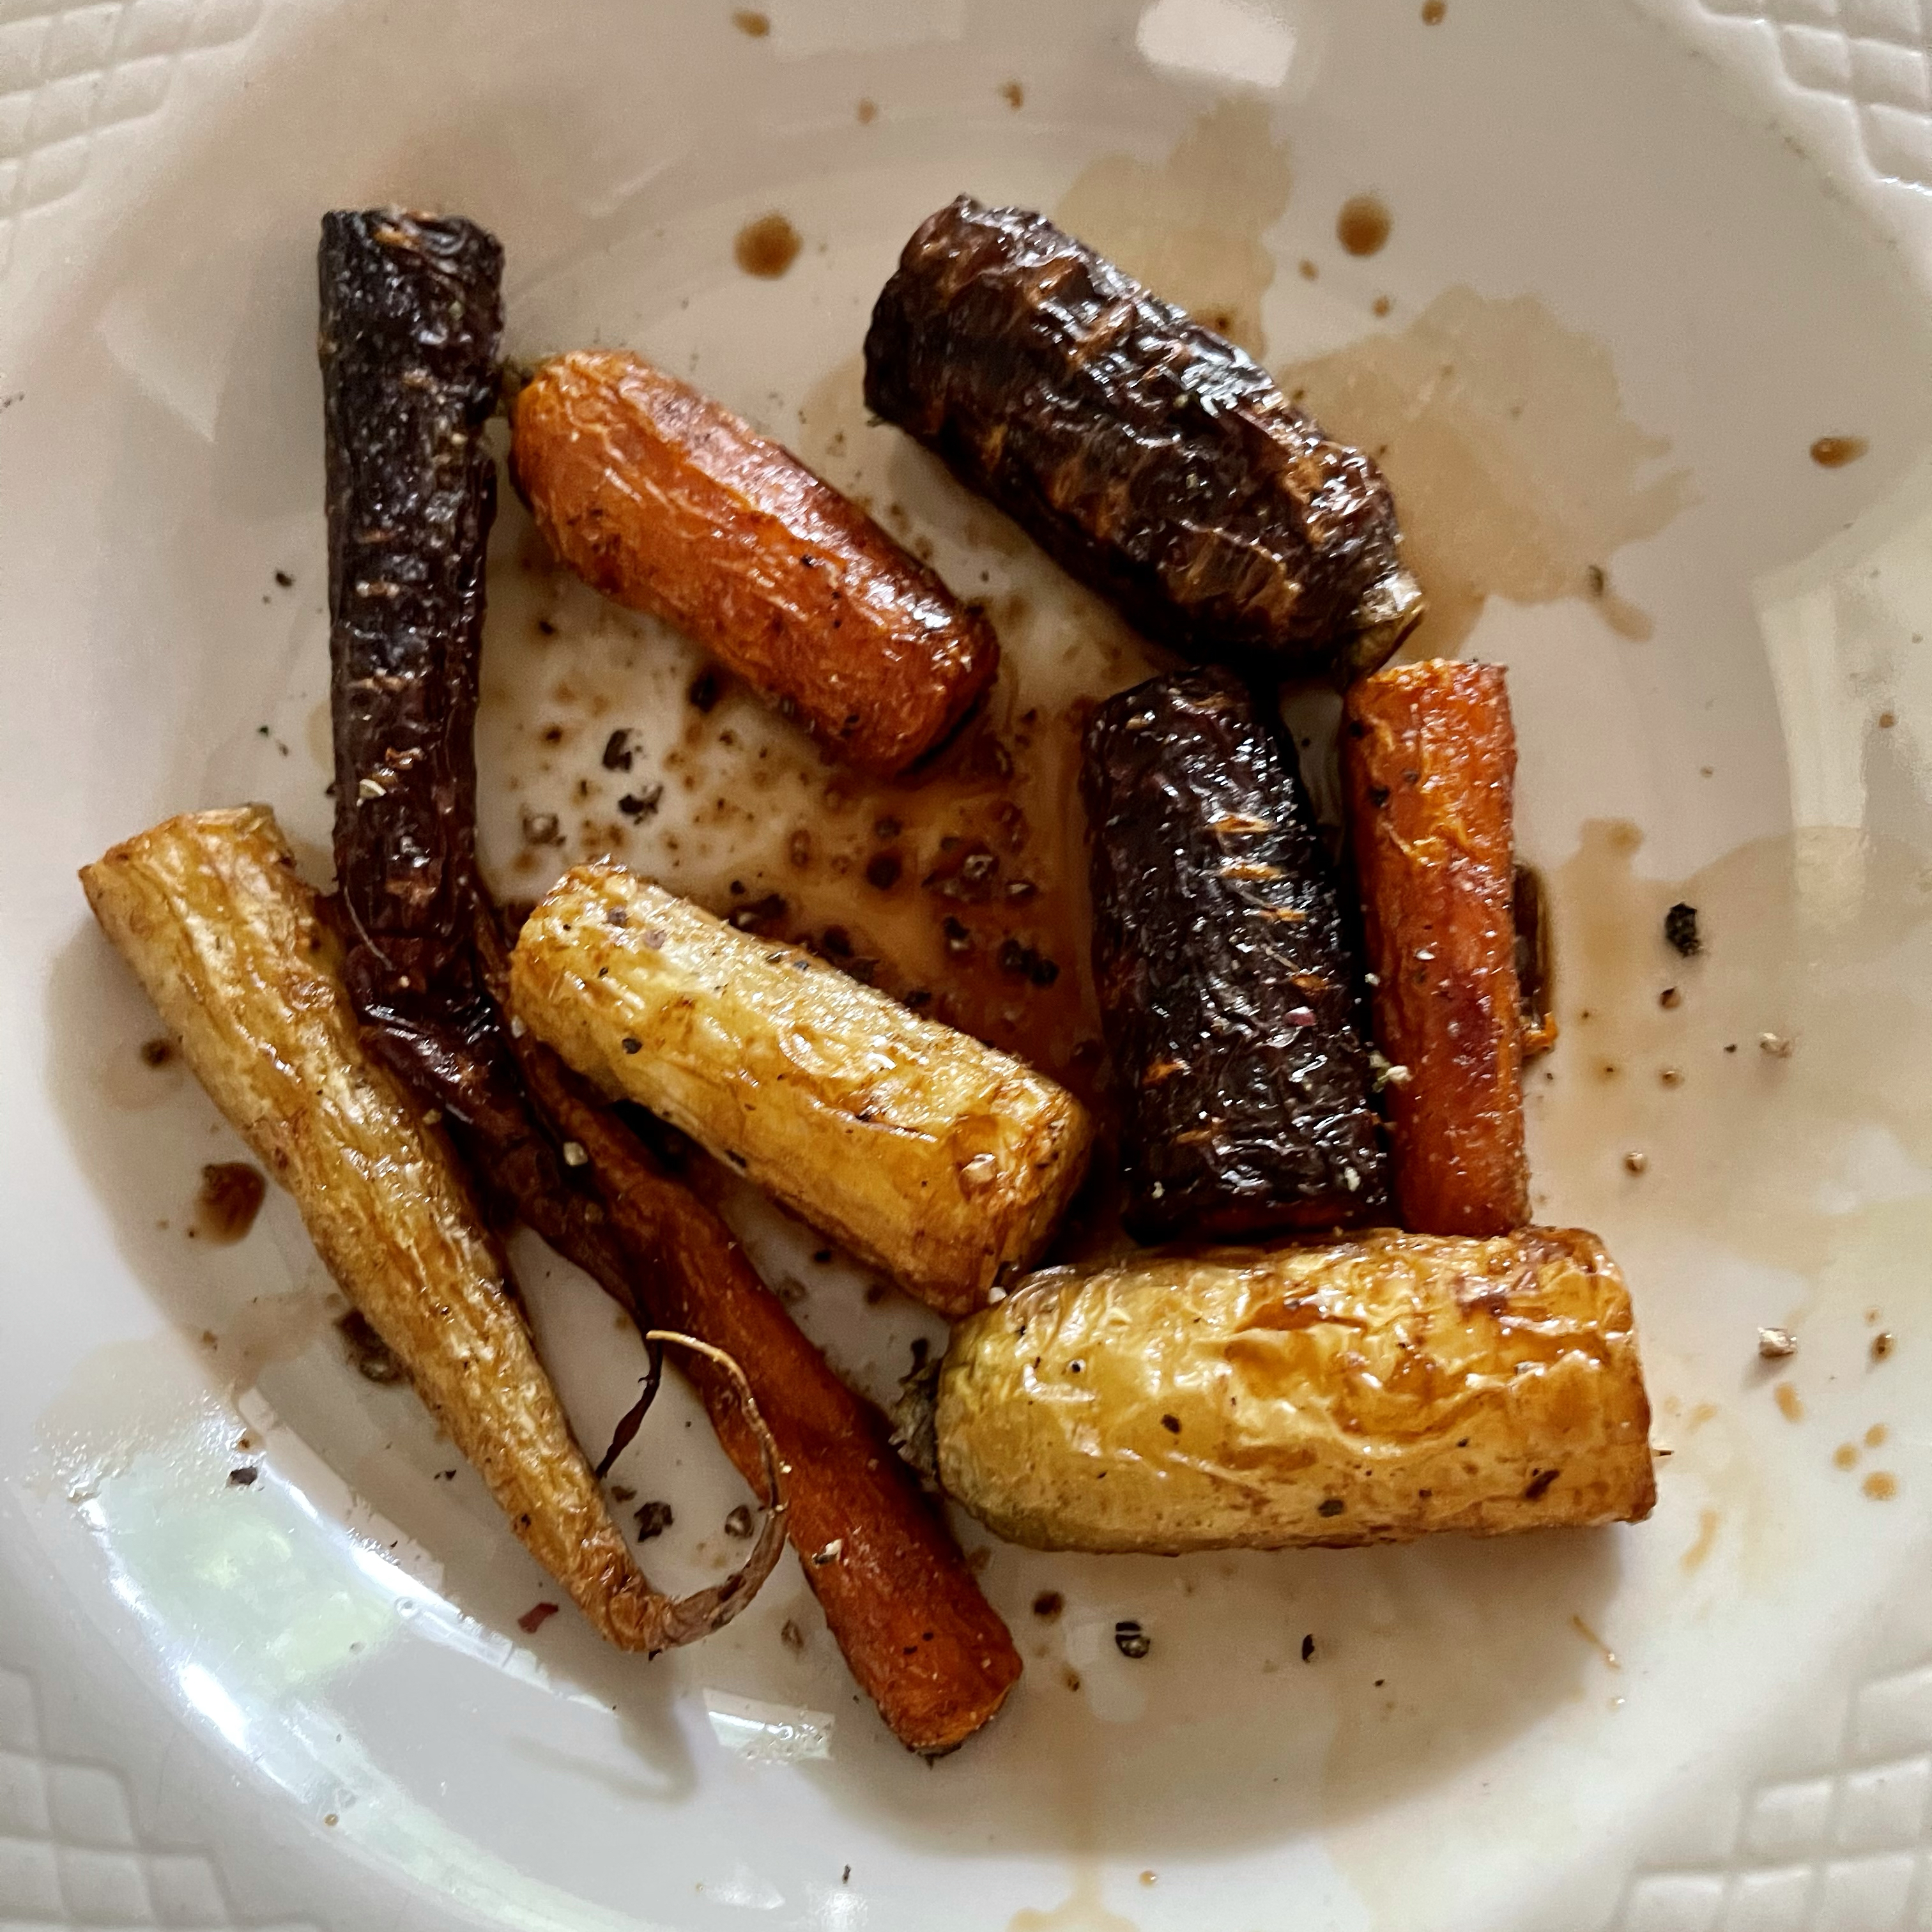 Balsamic Roasted Carrots Paige Byers Southard